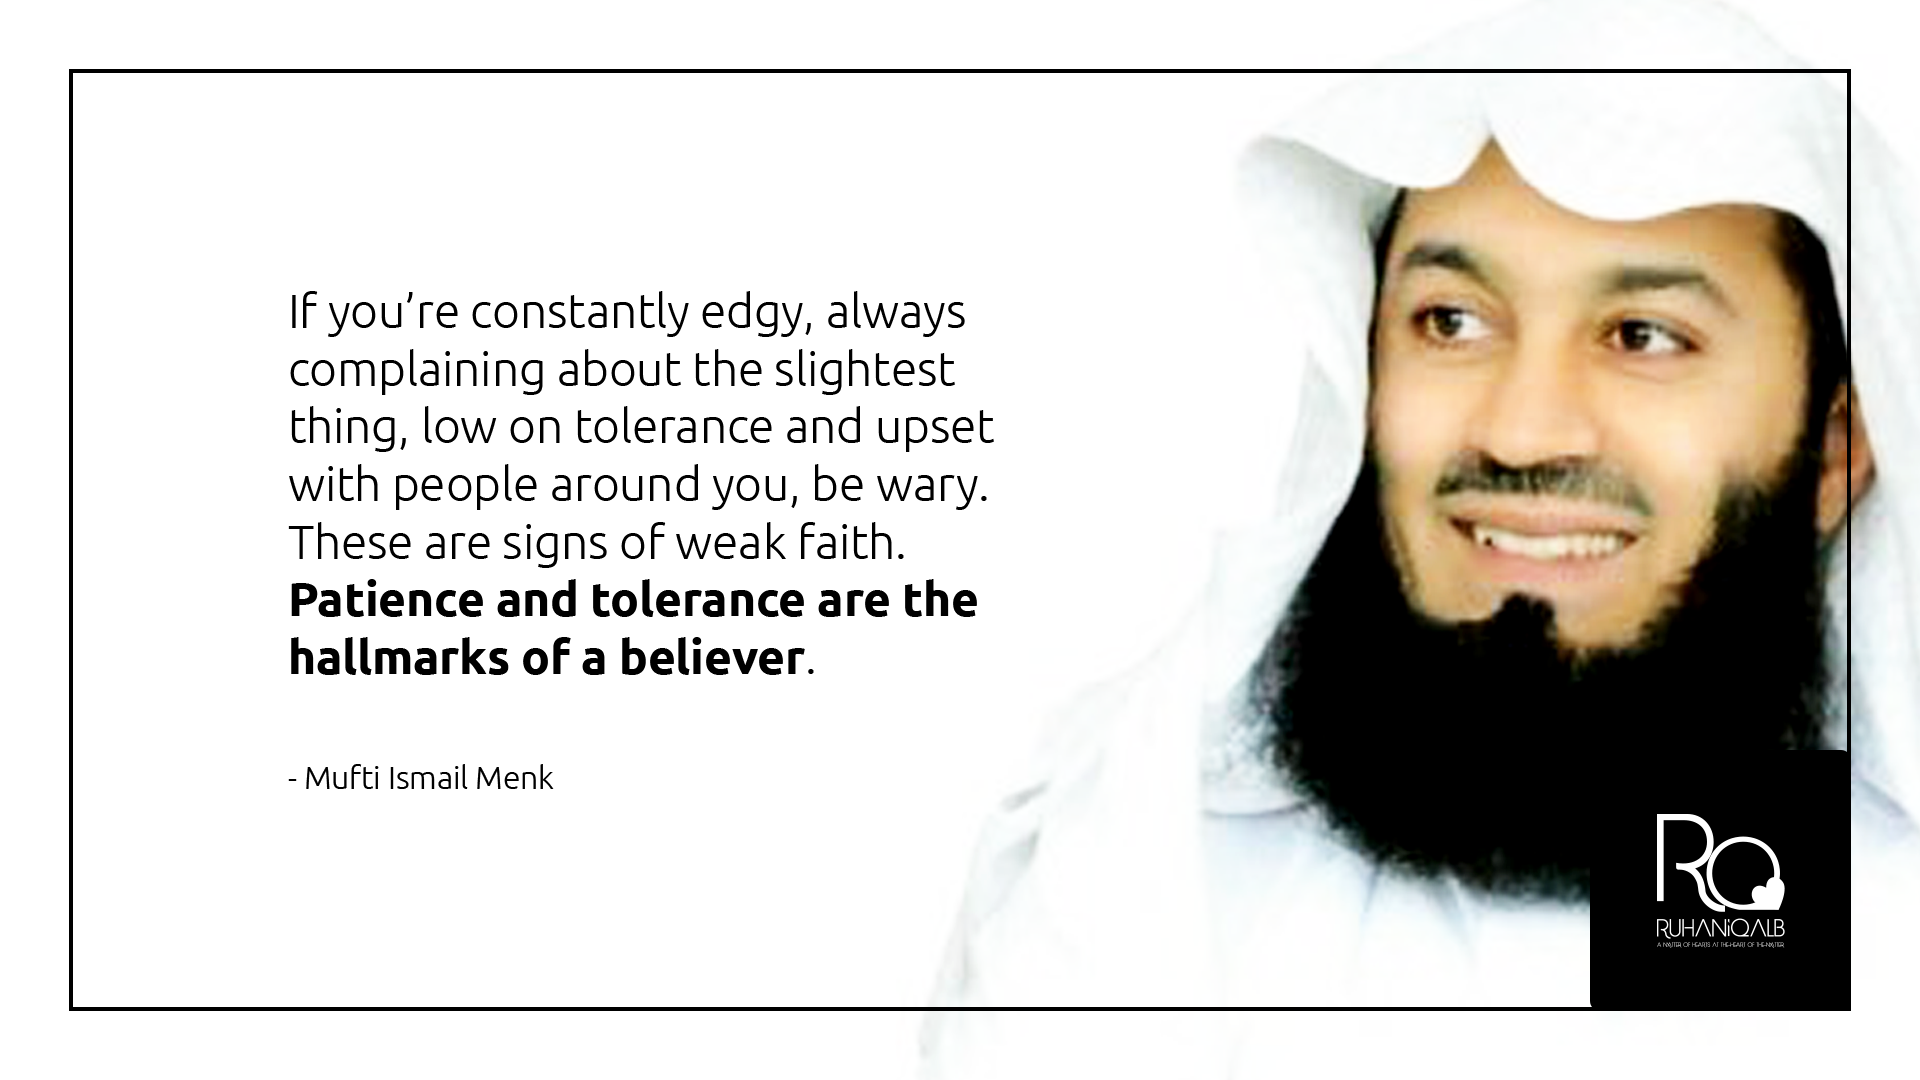 Patience-and-tolerance-are-the-hallmarks-of-a-believer